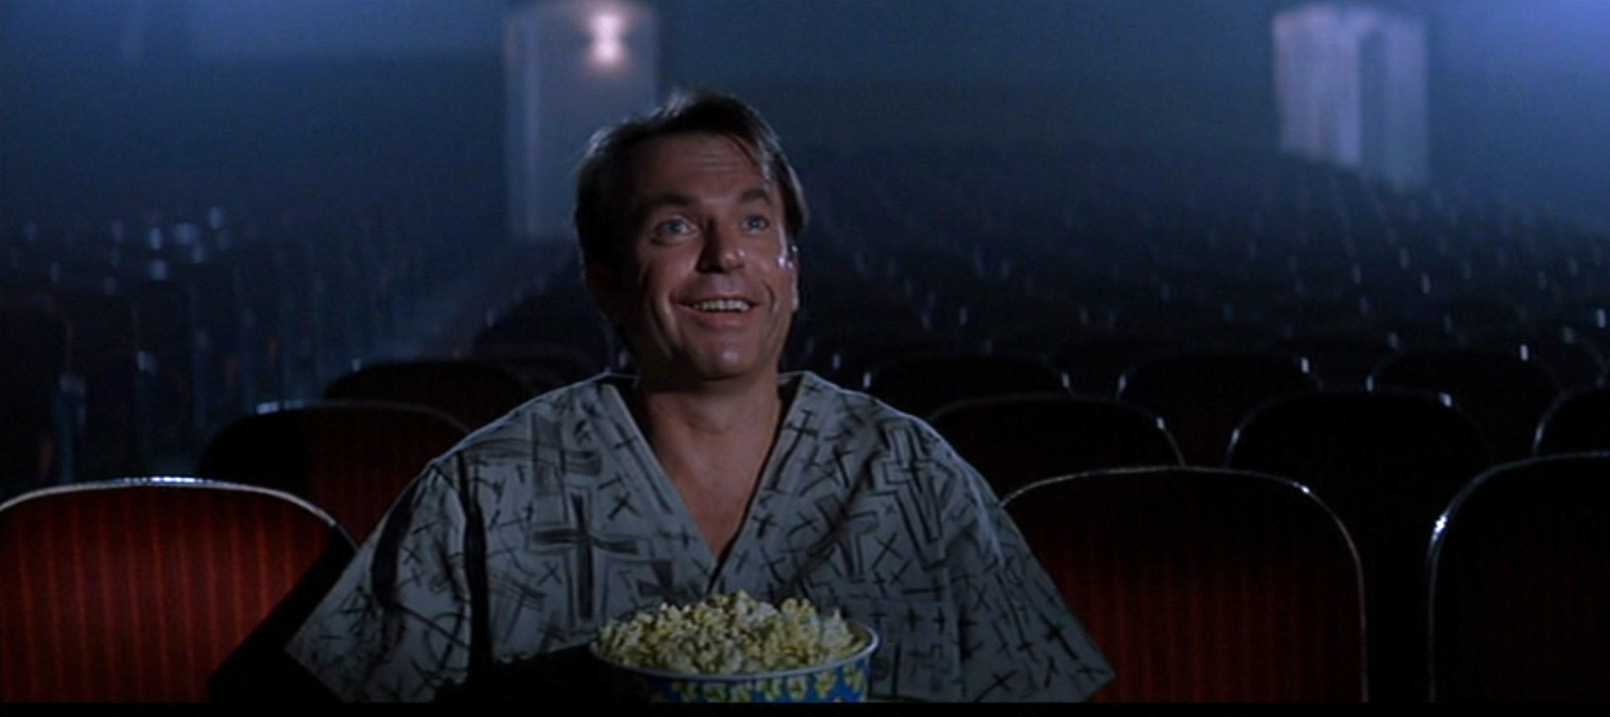 Big Trouble in Little Cinema: In the Mouth of Madness (November 19)